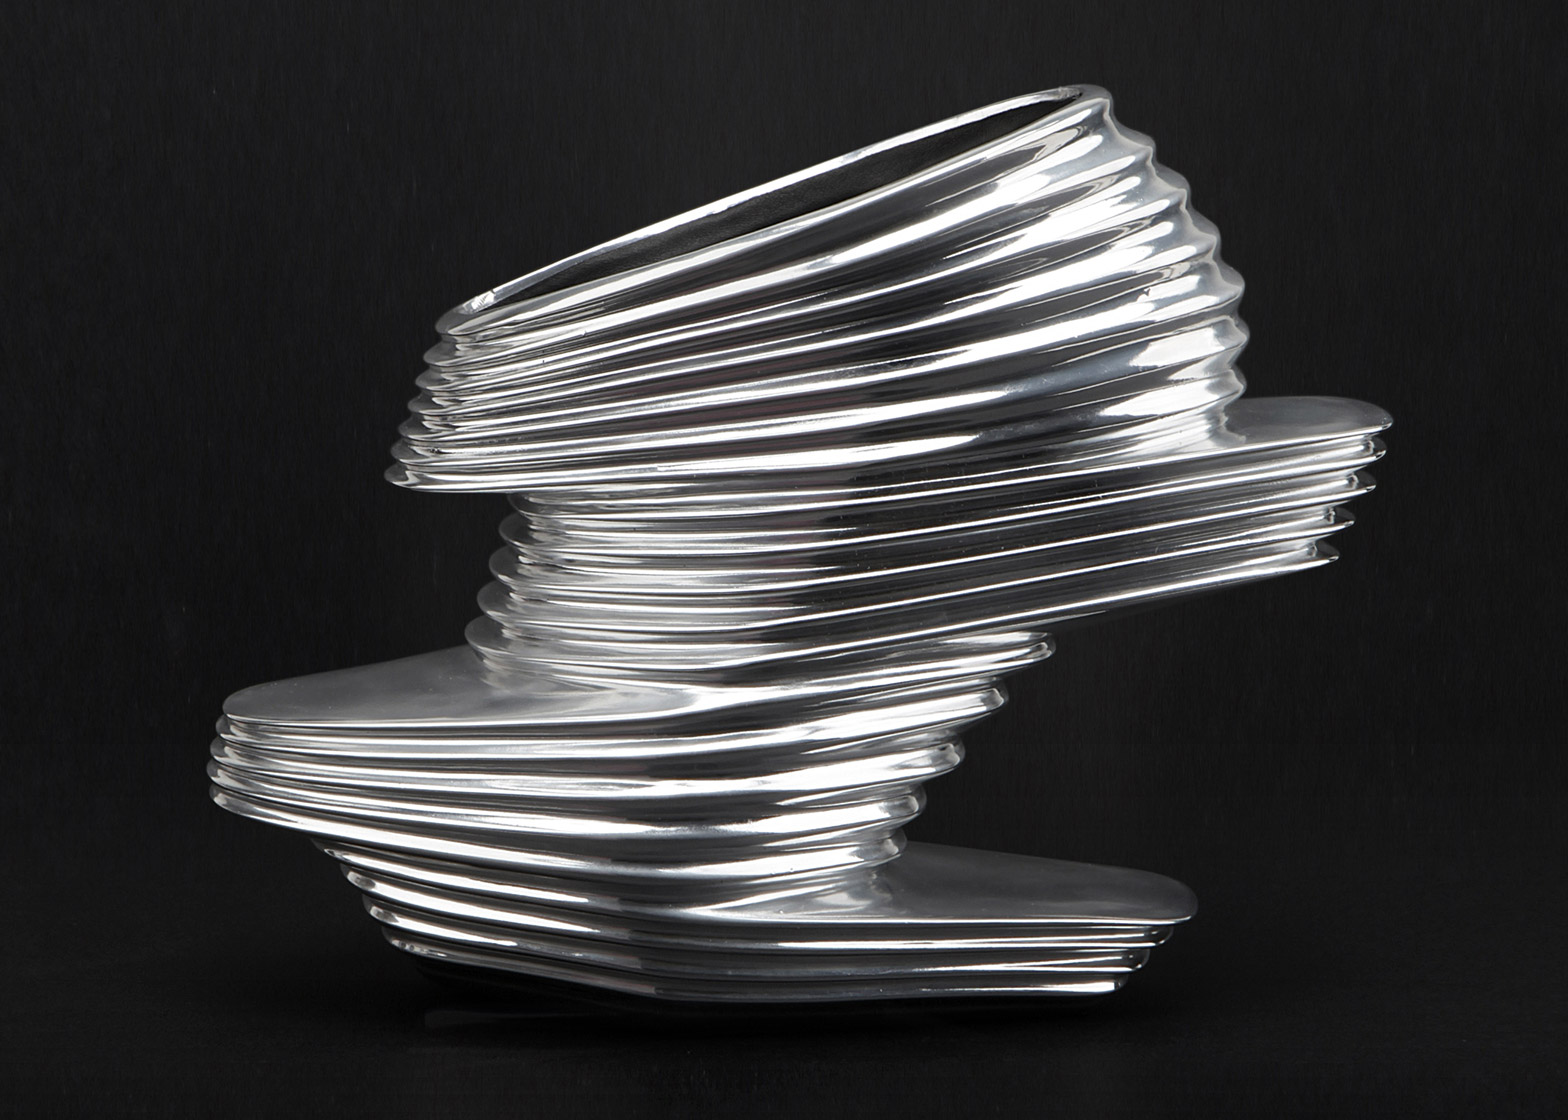 Zaha Hadid tribute at Masterpiece by Francis Sultana